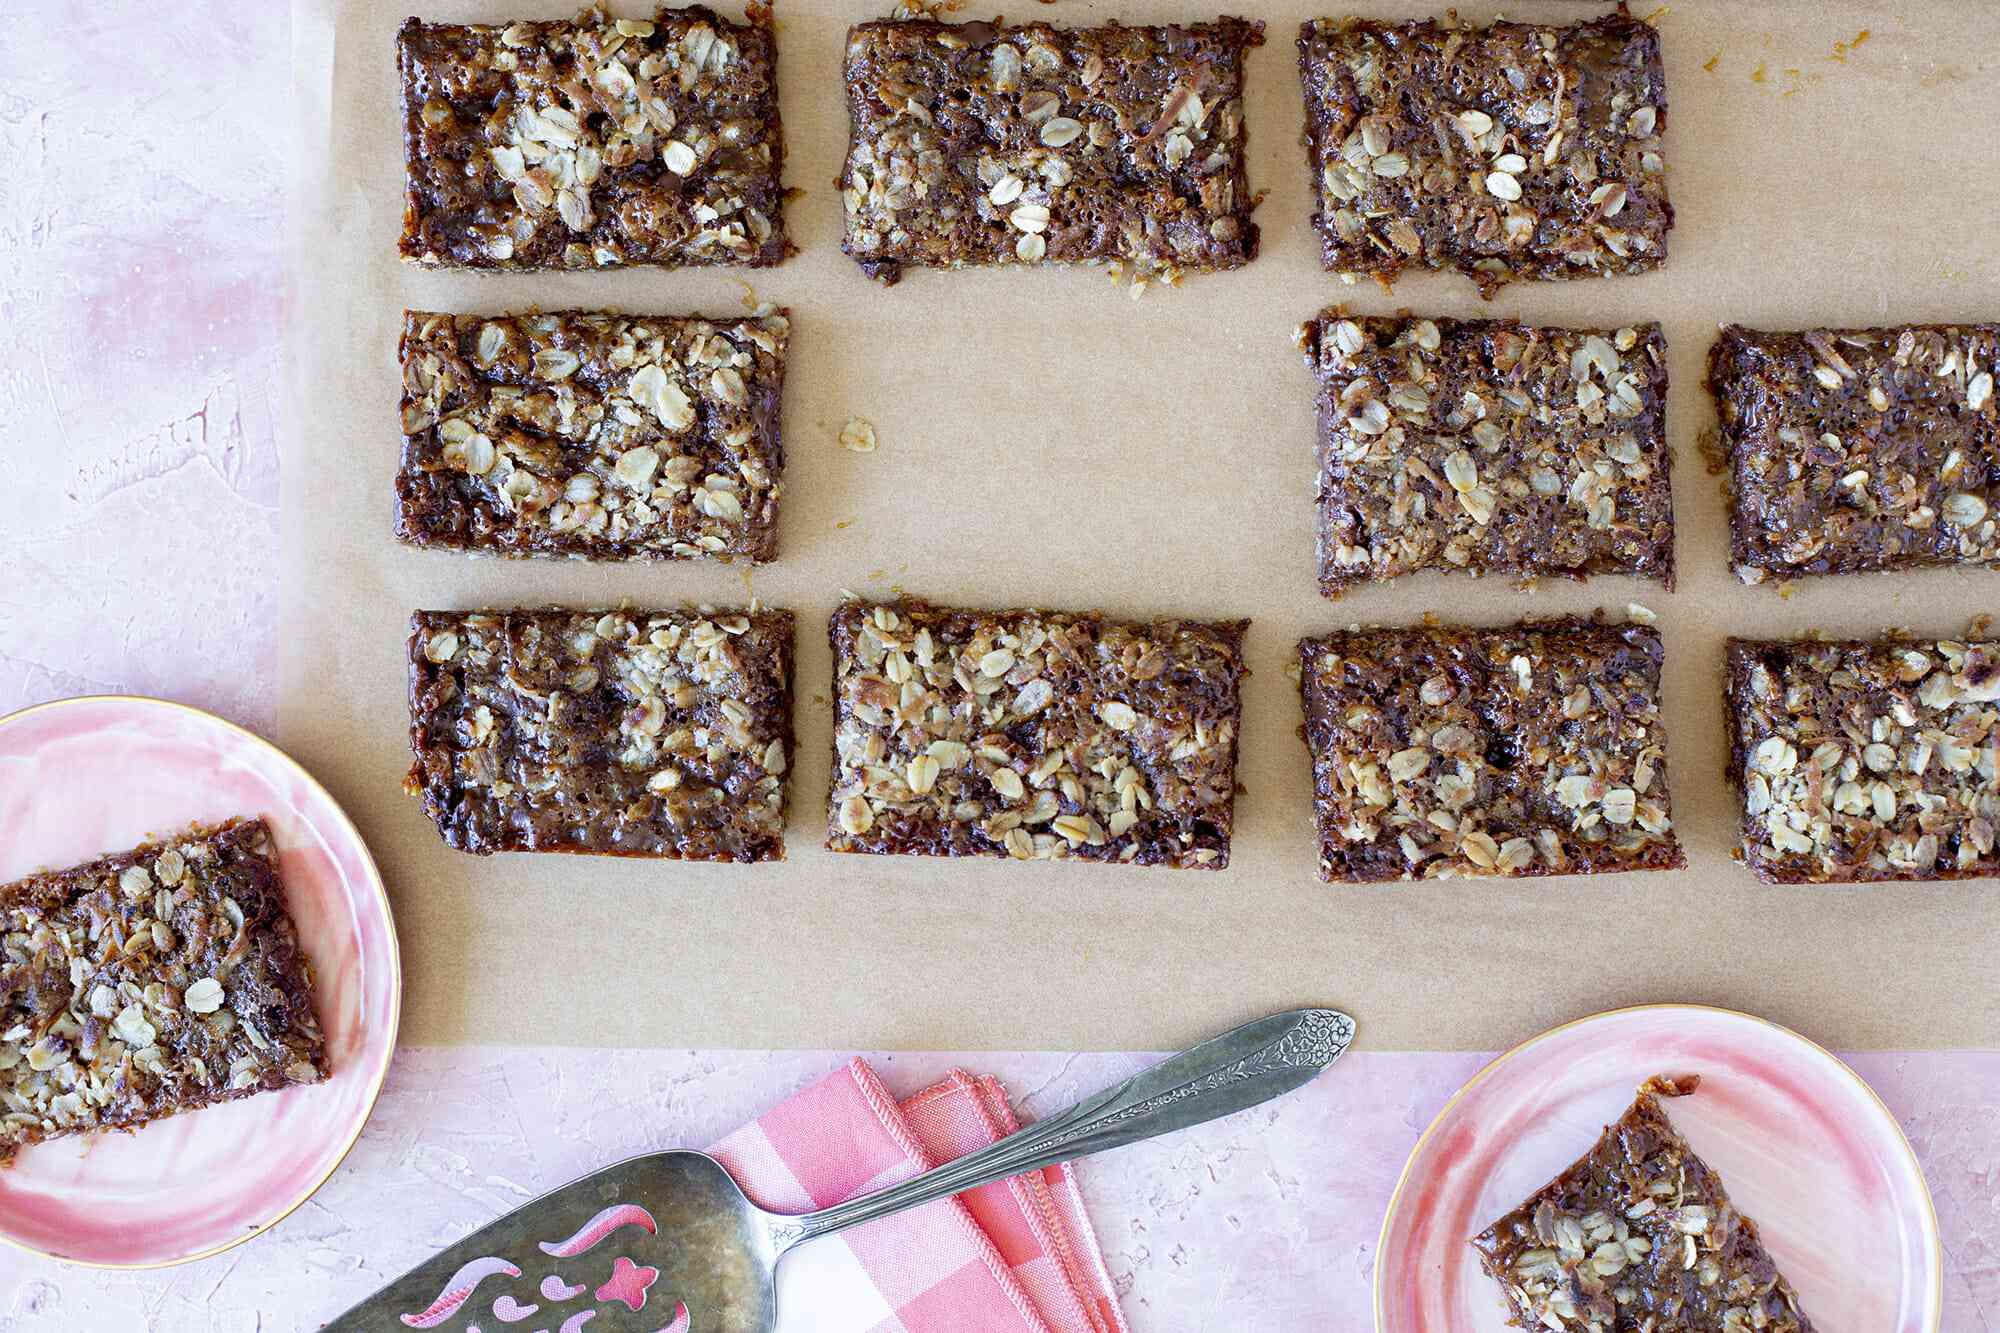 How to Make Carmelita Bars - bars on parchment paper